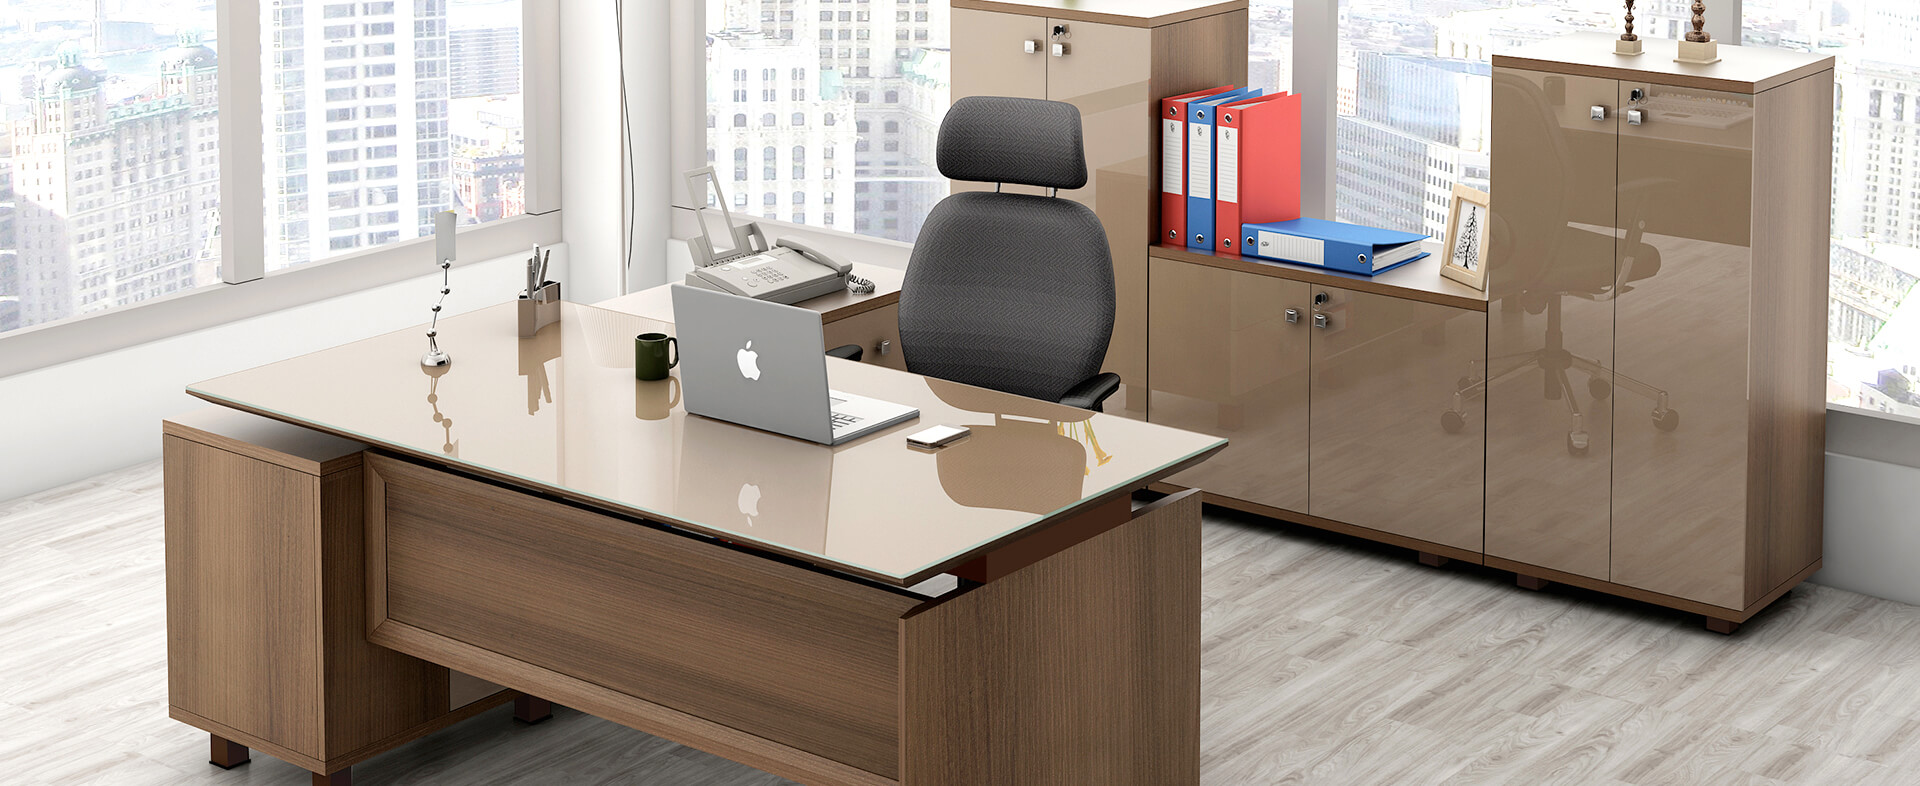 revolving chair manufacturers in ahmedabad steel bench office furniture price valas premium